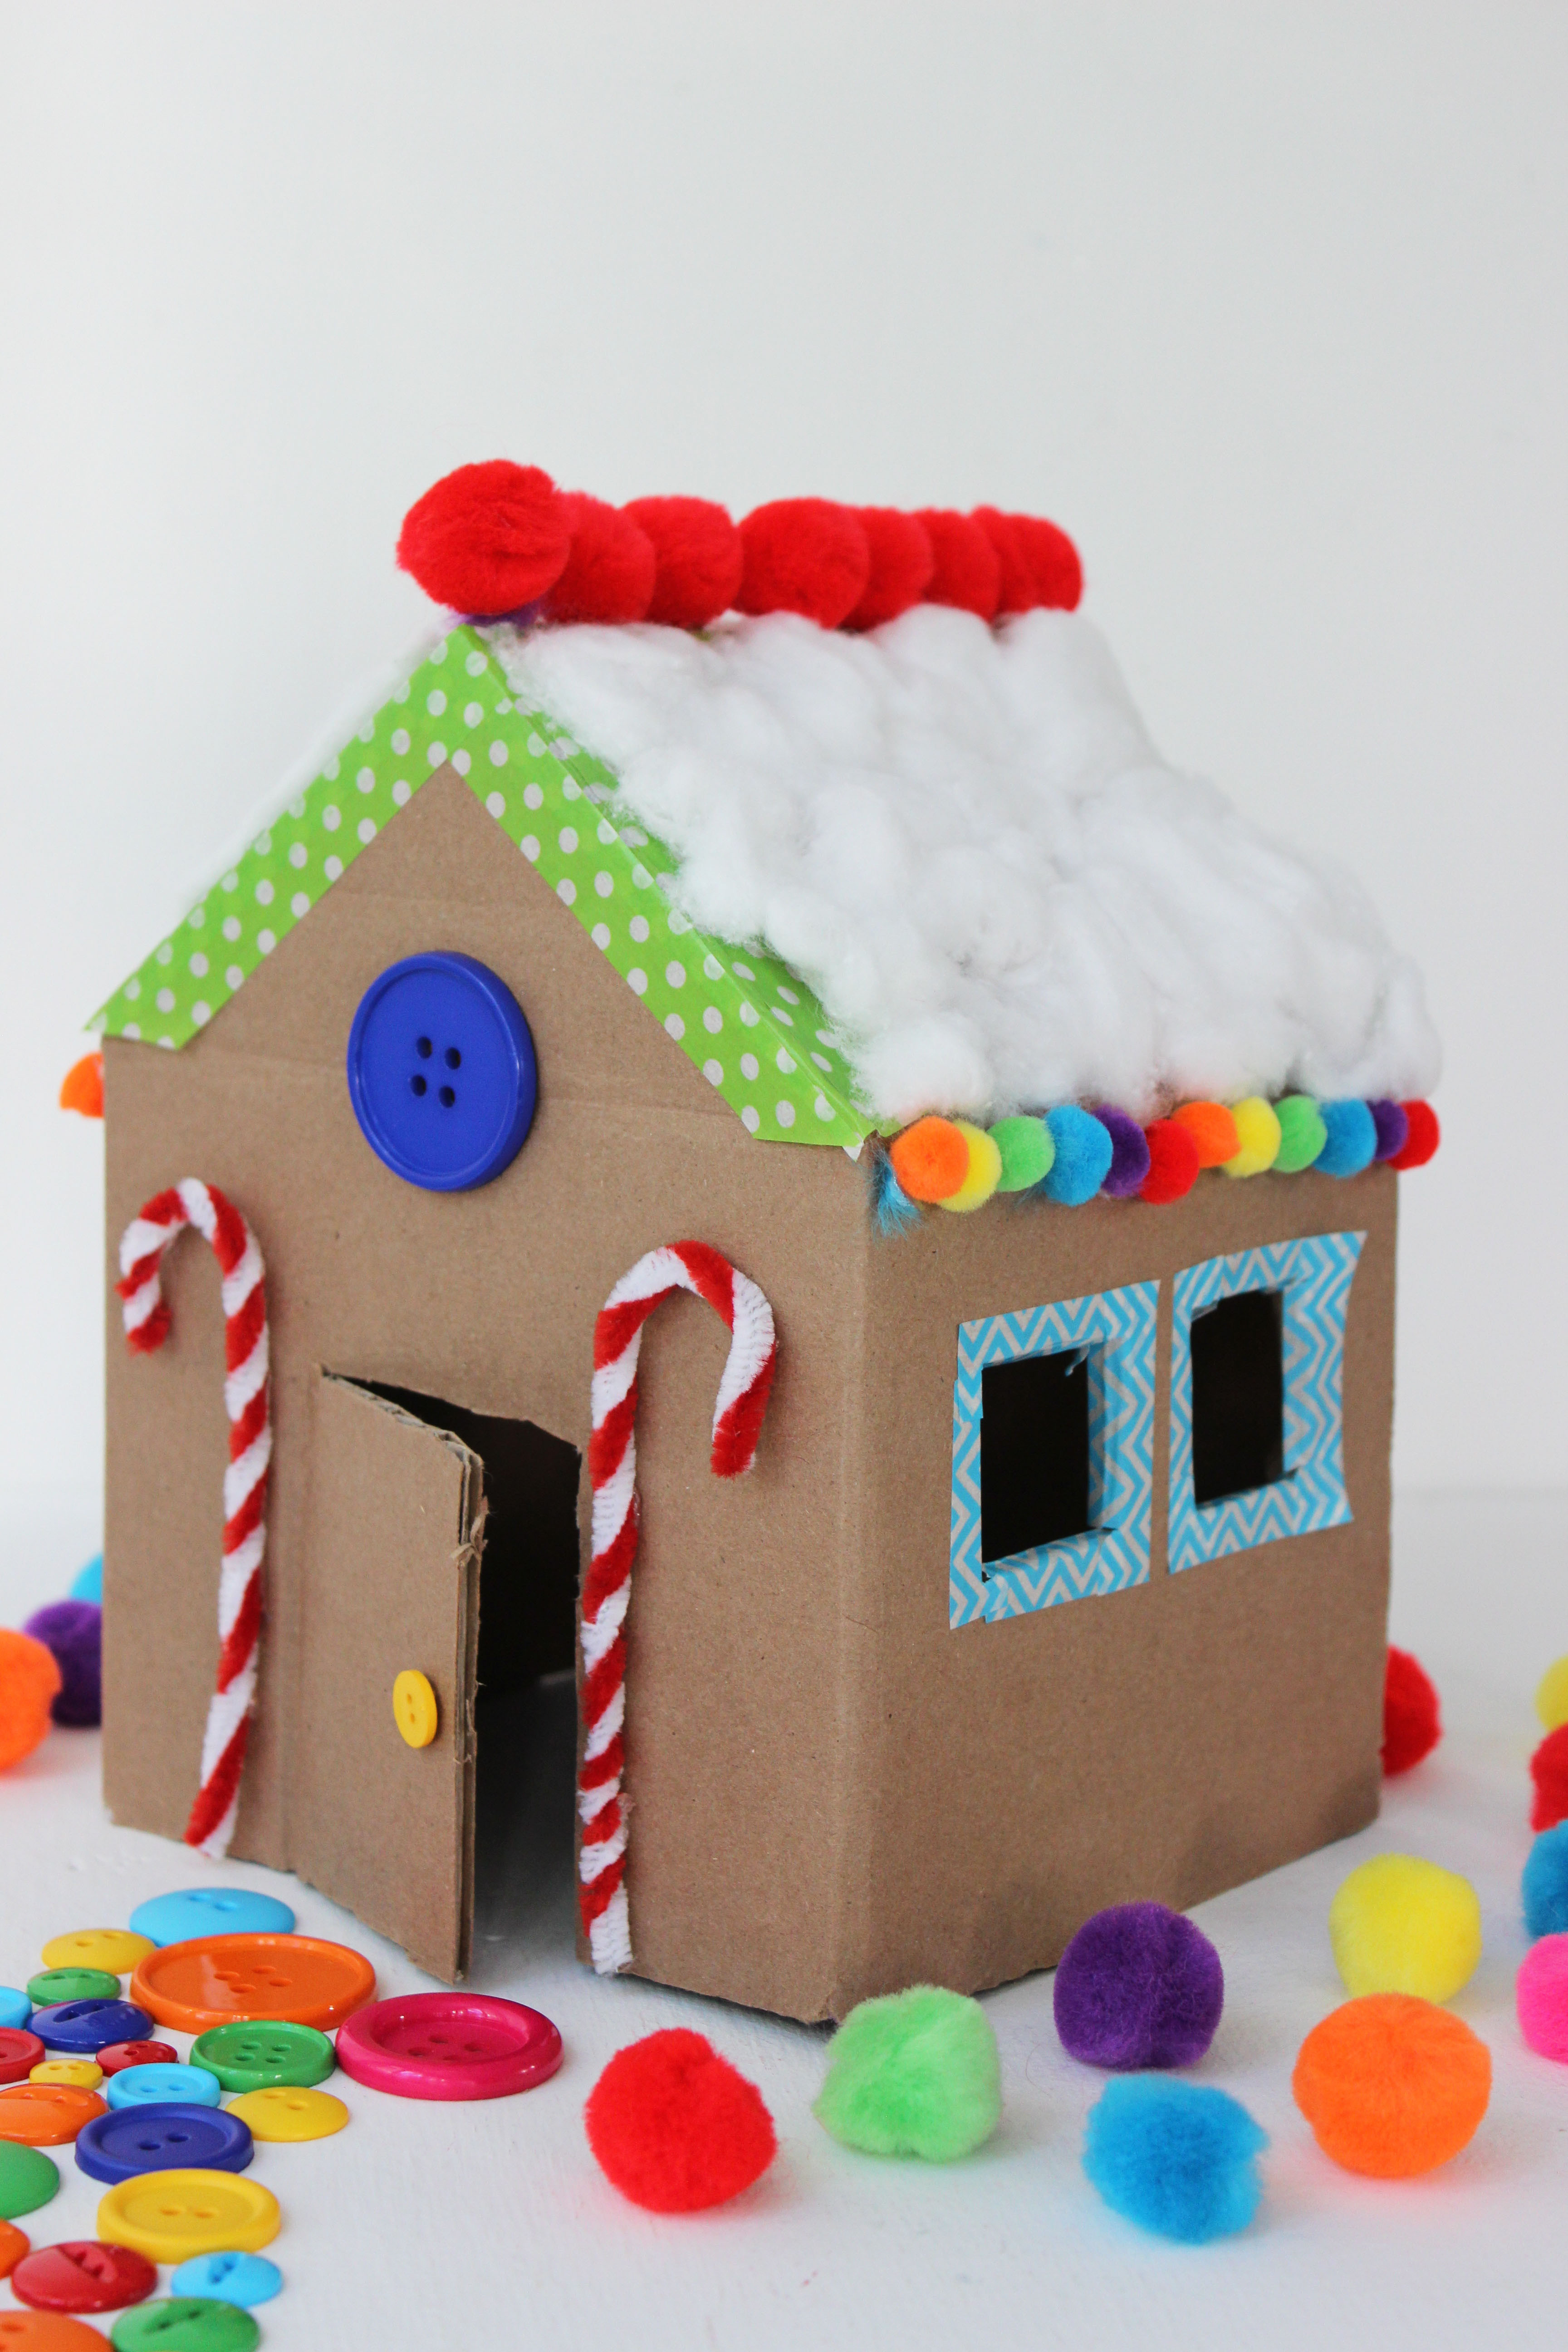 Best ideas about Kids Craft Projects . Save or Pin 10 ways to turn you cardboard boxes into kids' crafts Now.